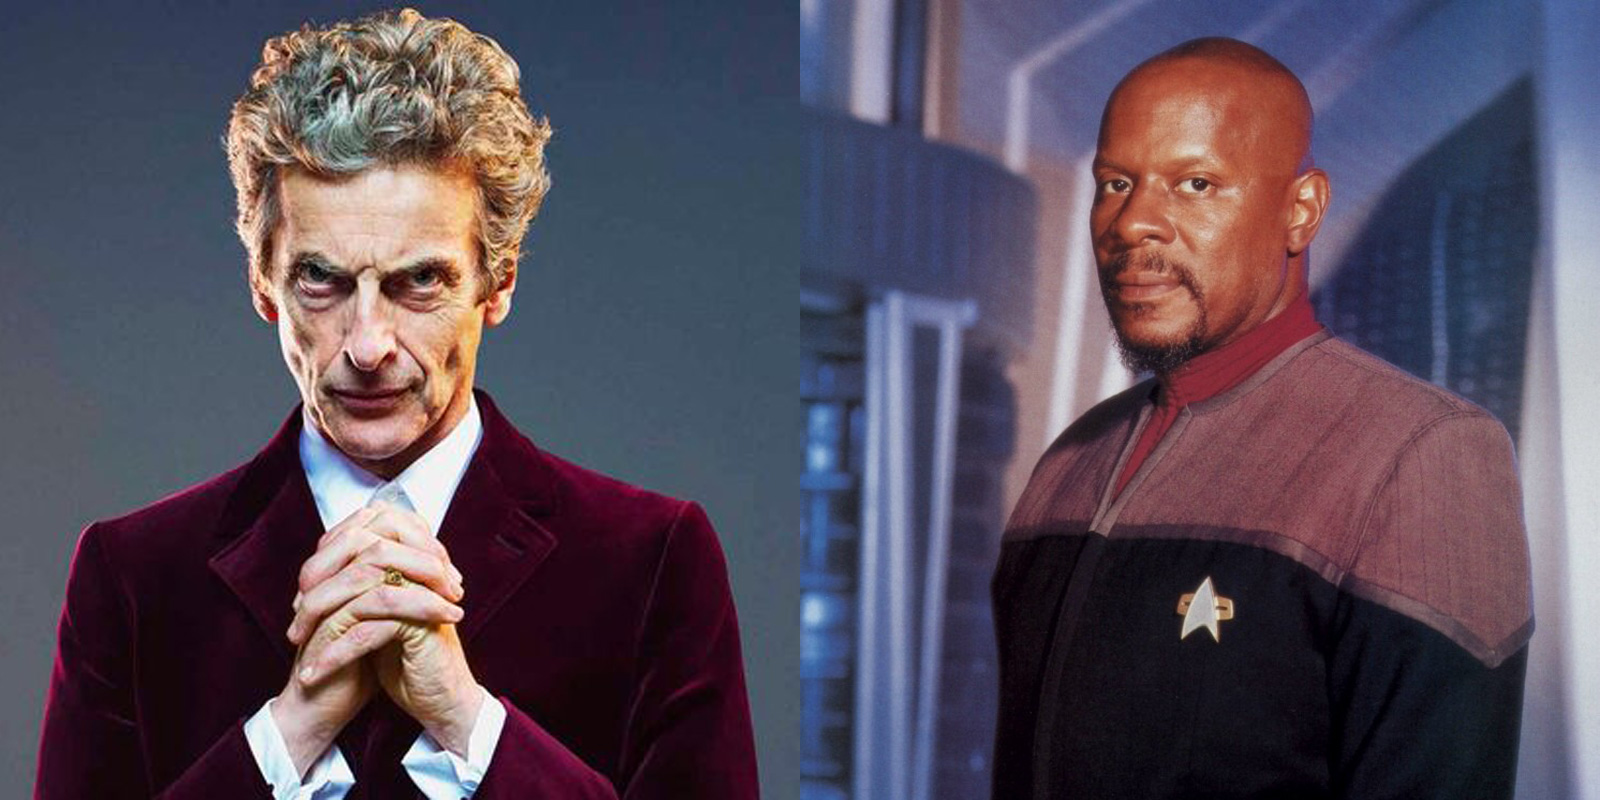 Peter Capaldi as Doctor Who and Avery Brooks as Benjamin Sisko in Star Trek: Deep Space Nine